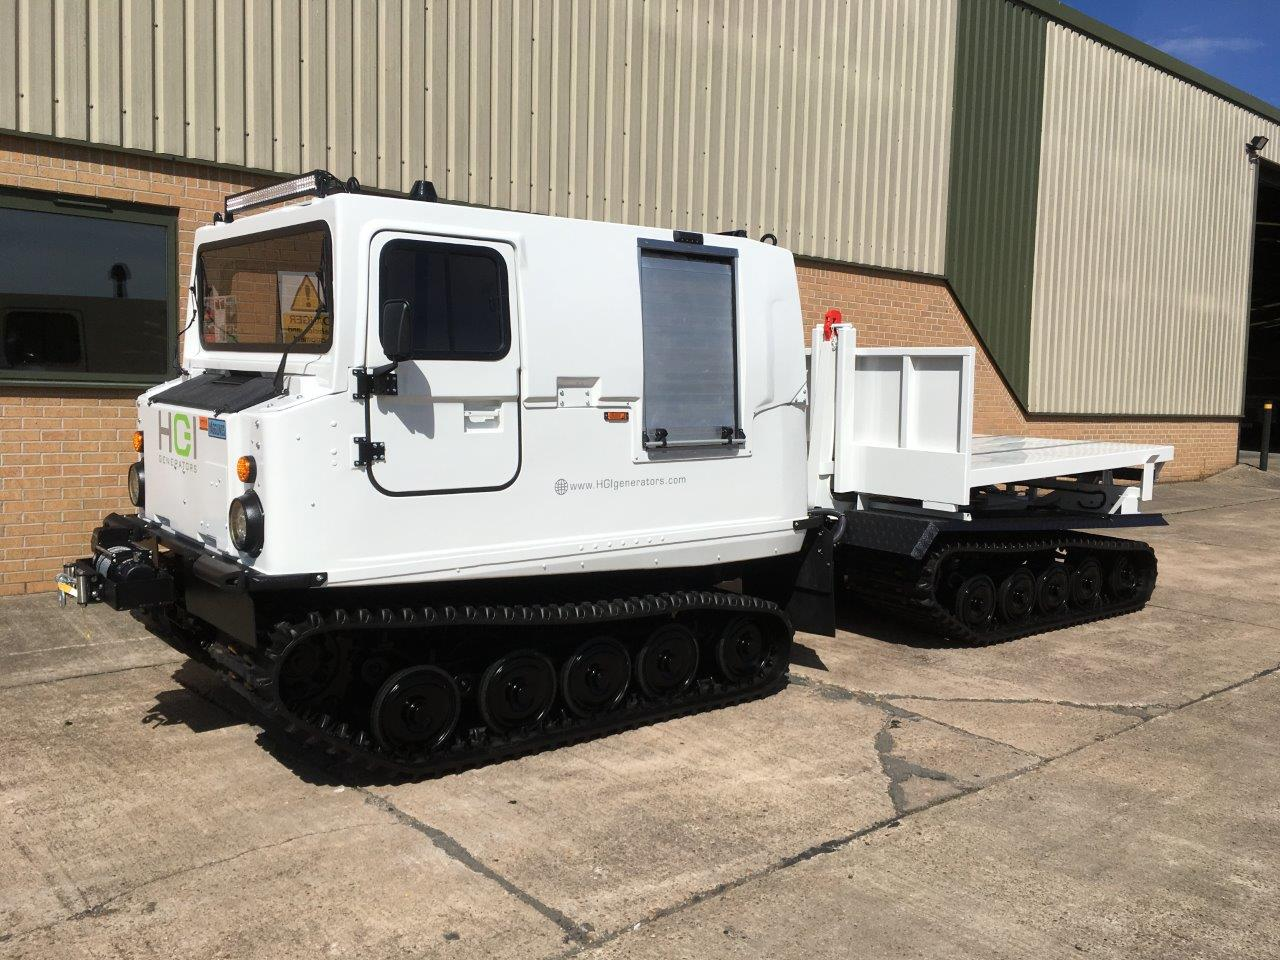 Hagglunds Bv206 DROPS Body Unit for sale | military vehicles